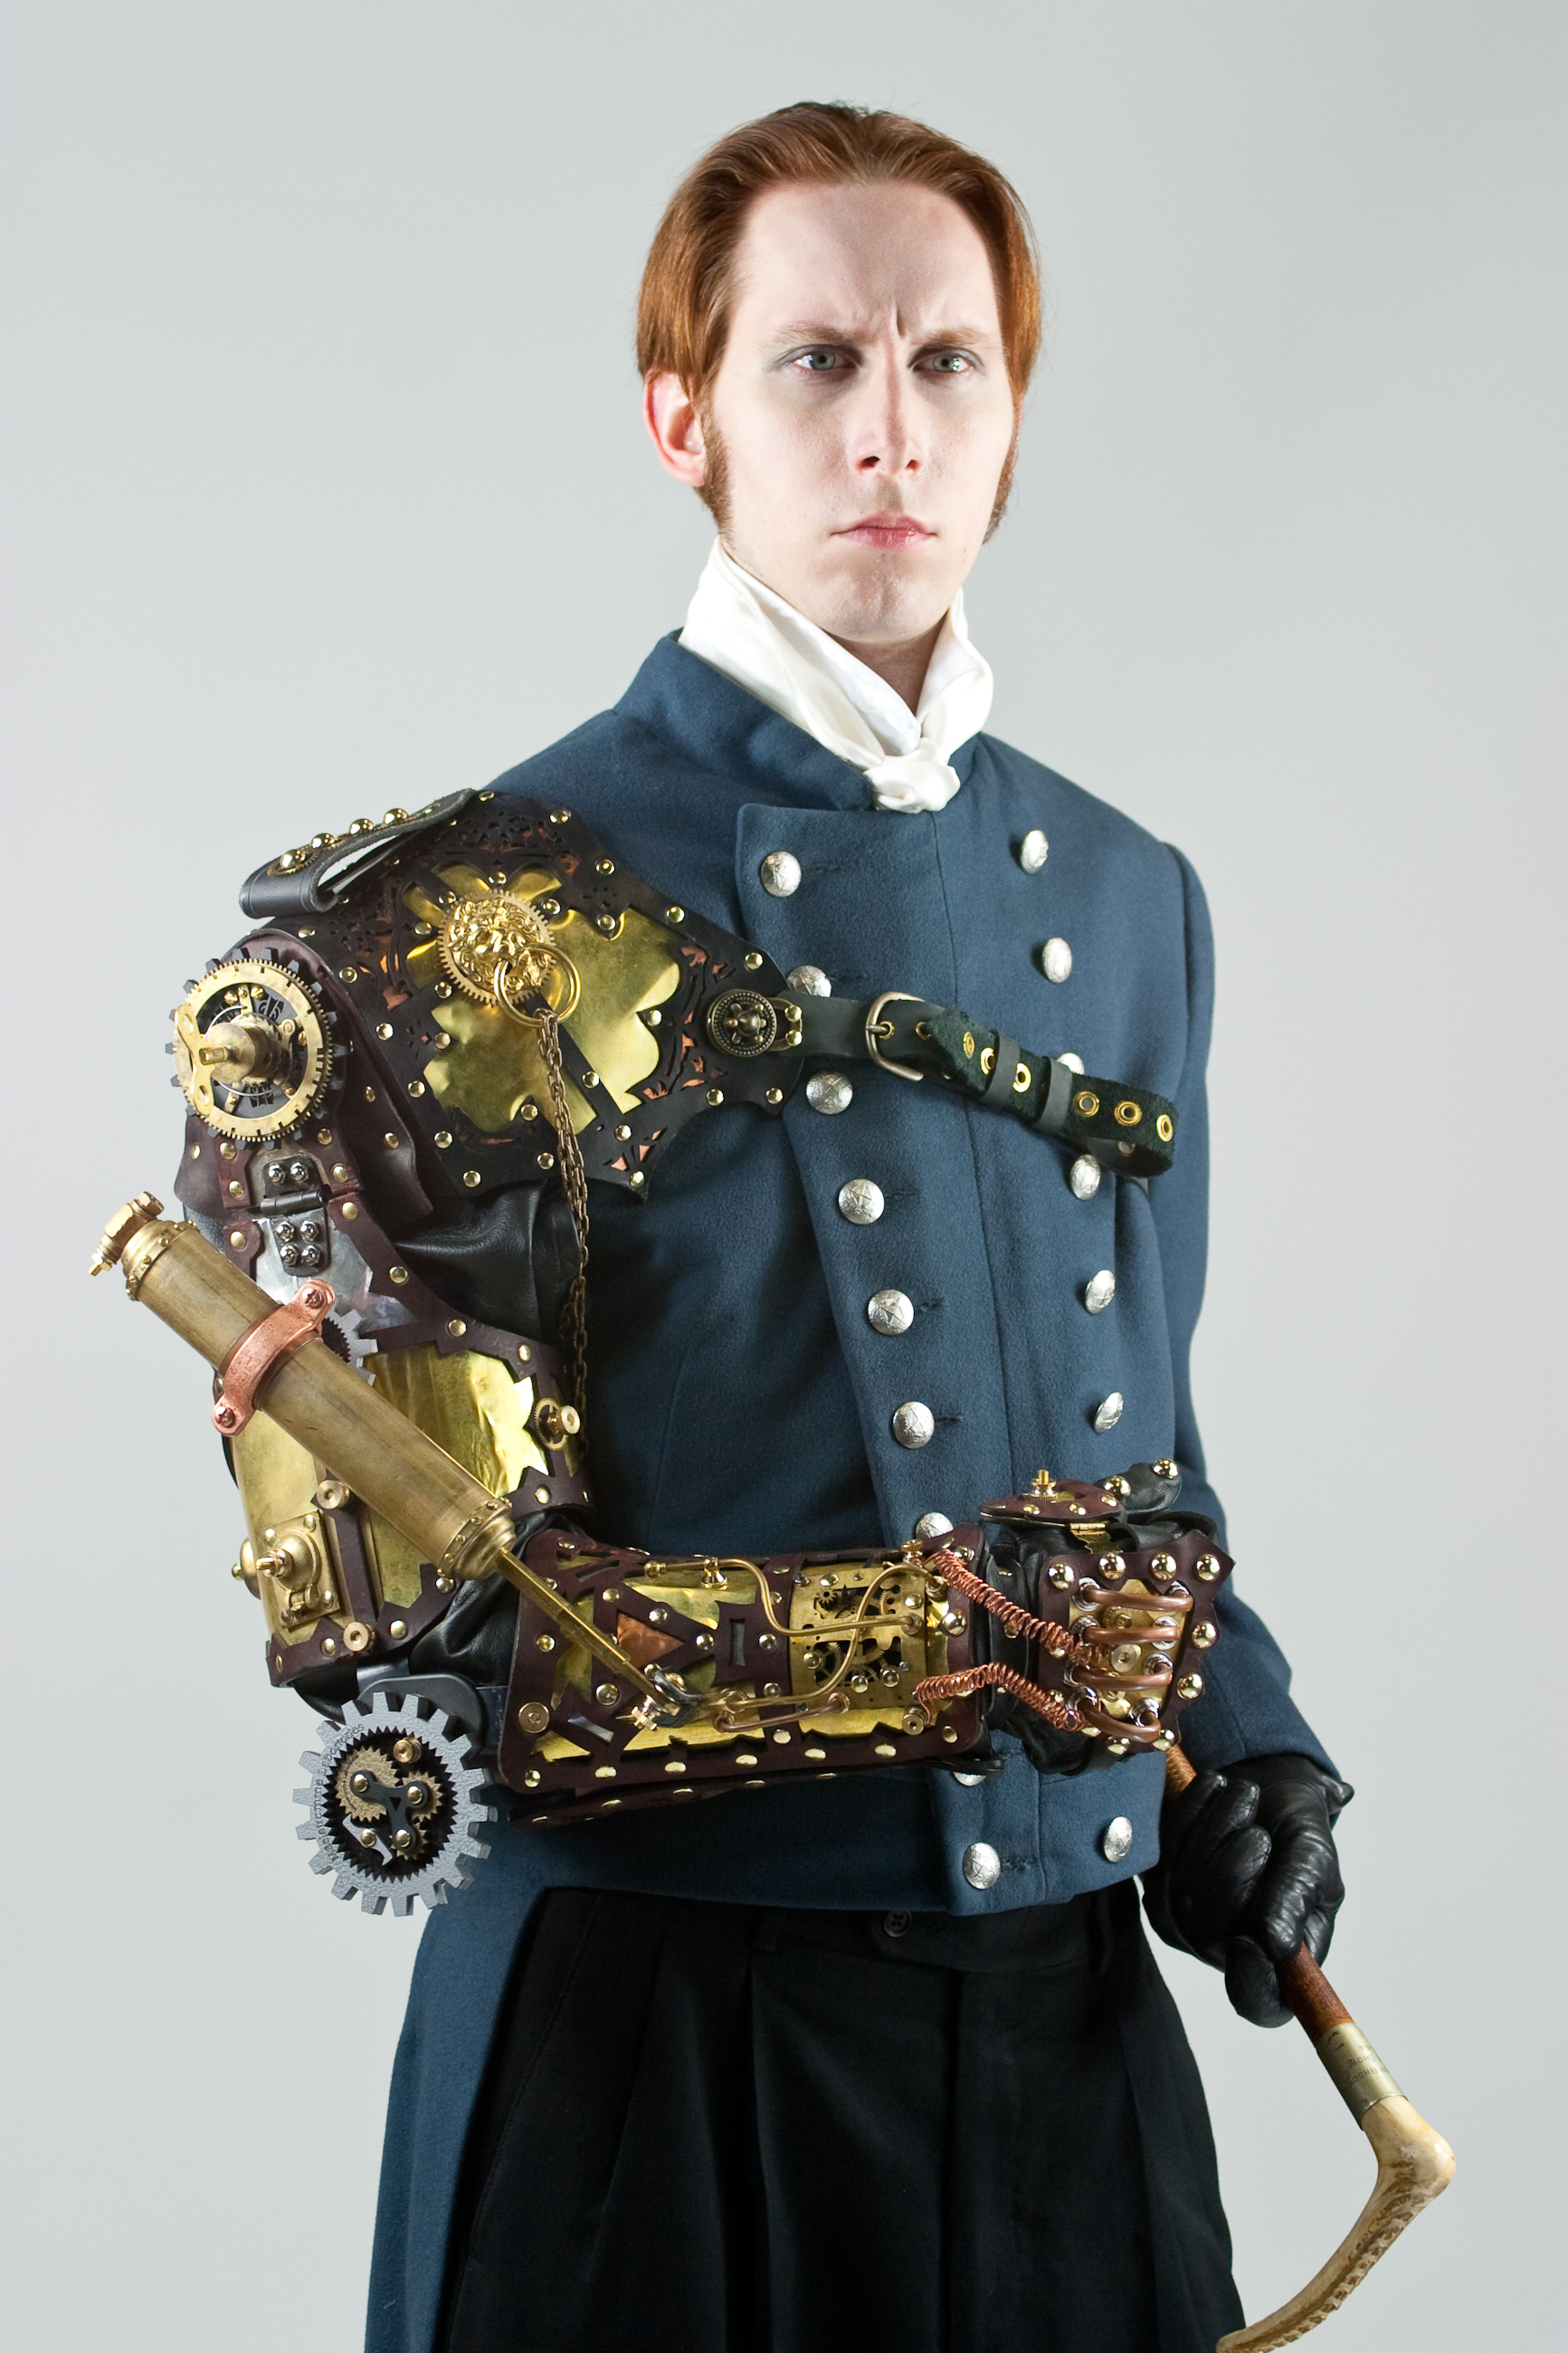 steampunk author g d falksen wearing a steampunk styled arm prosthesis created by thomas willeford exemplifying one take on steampunk fashion